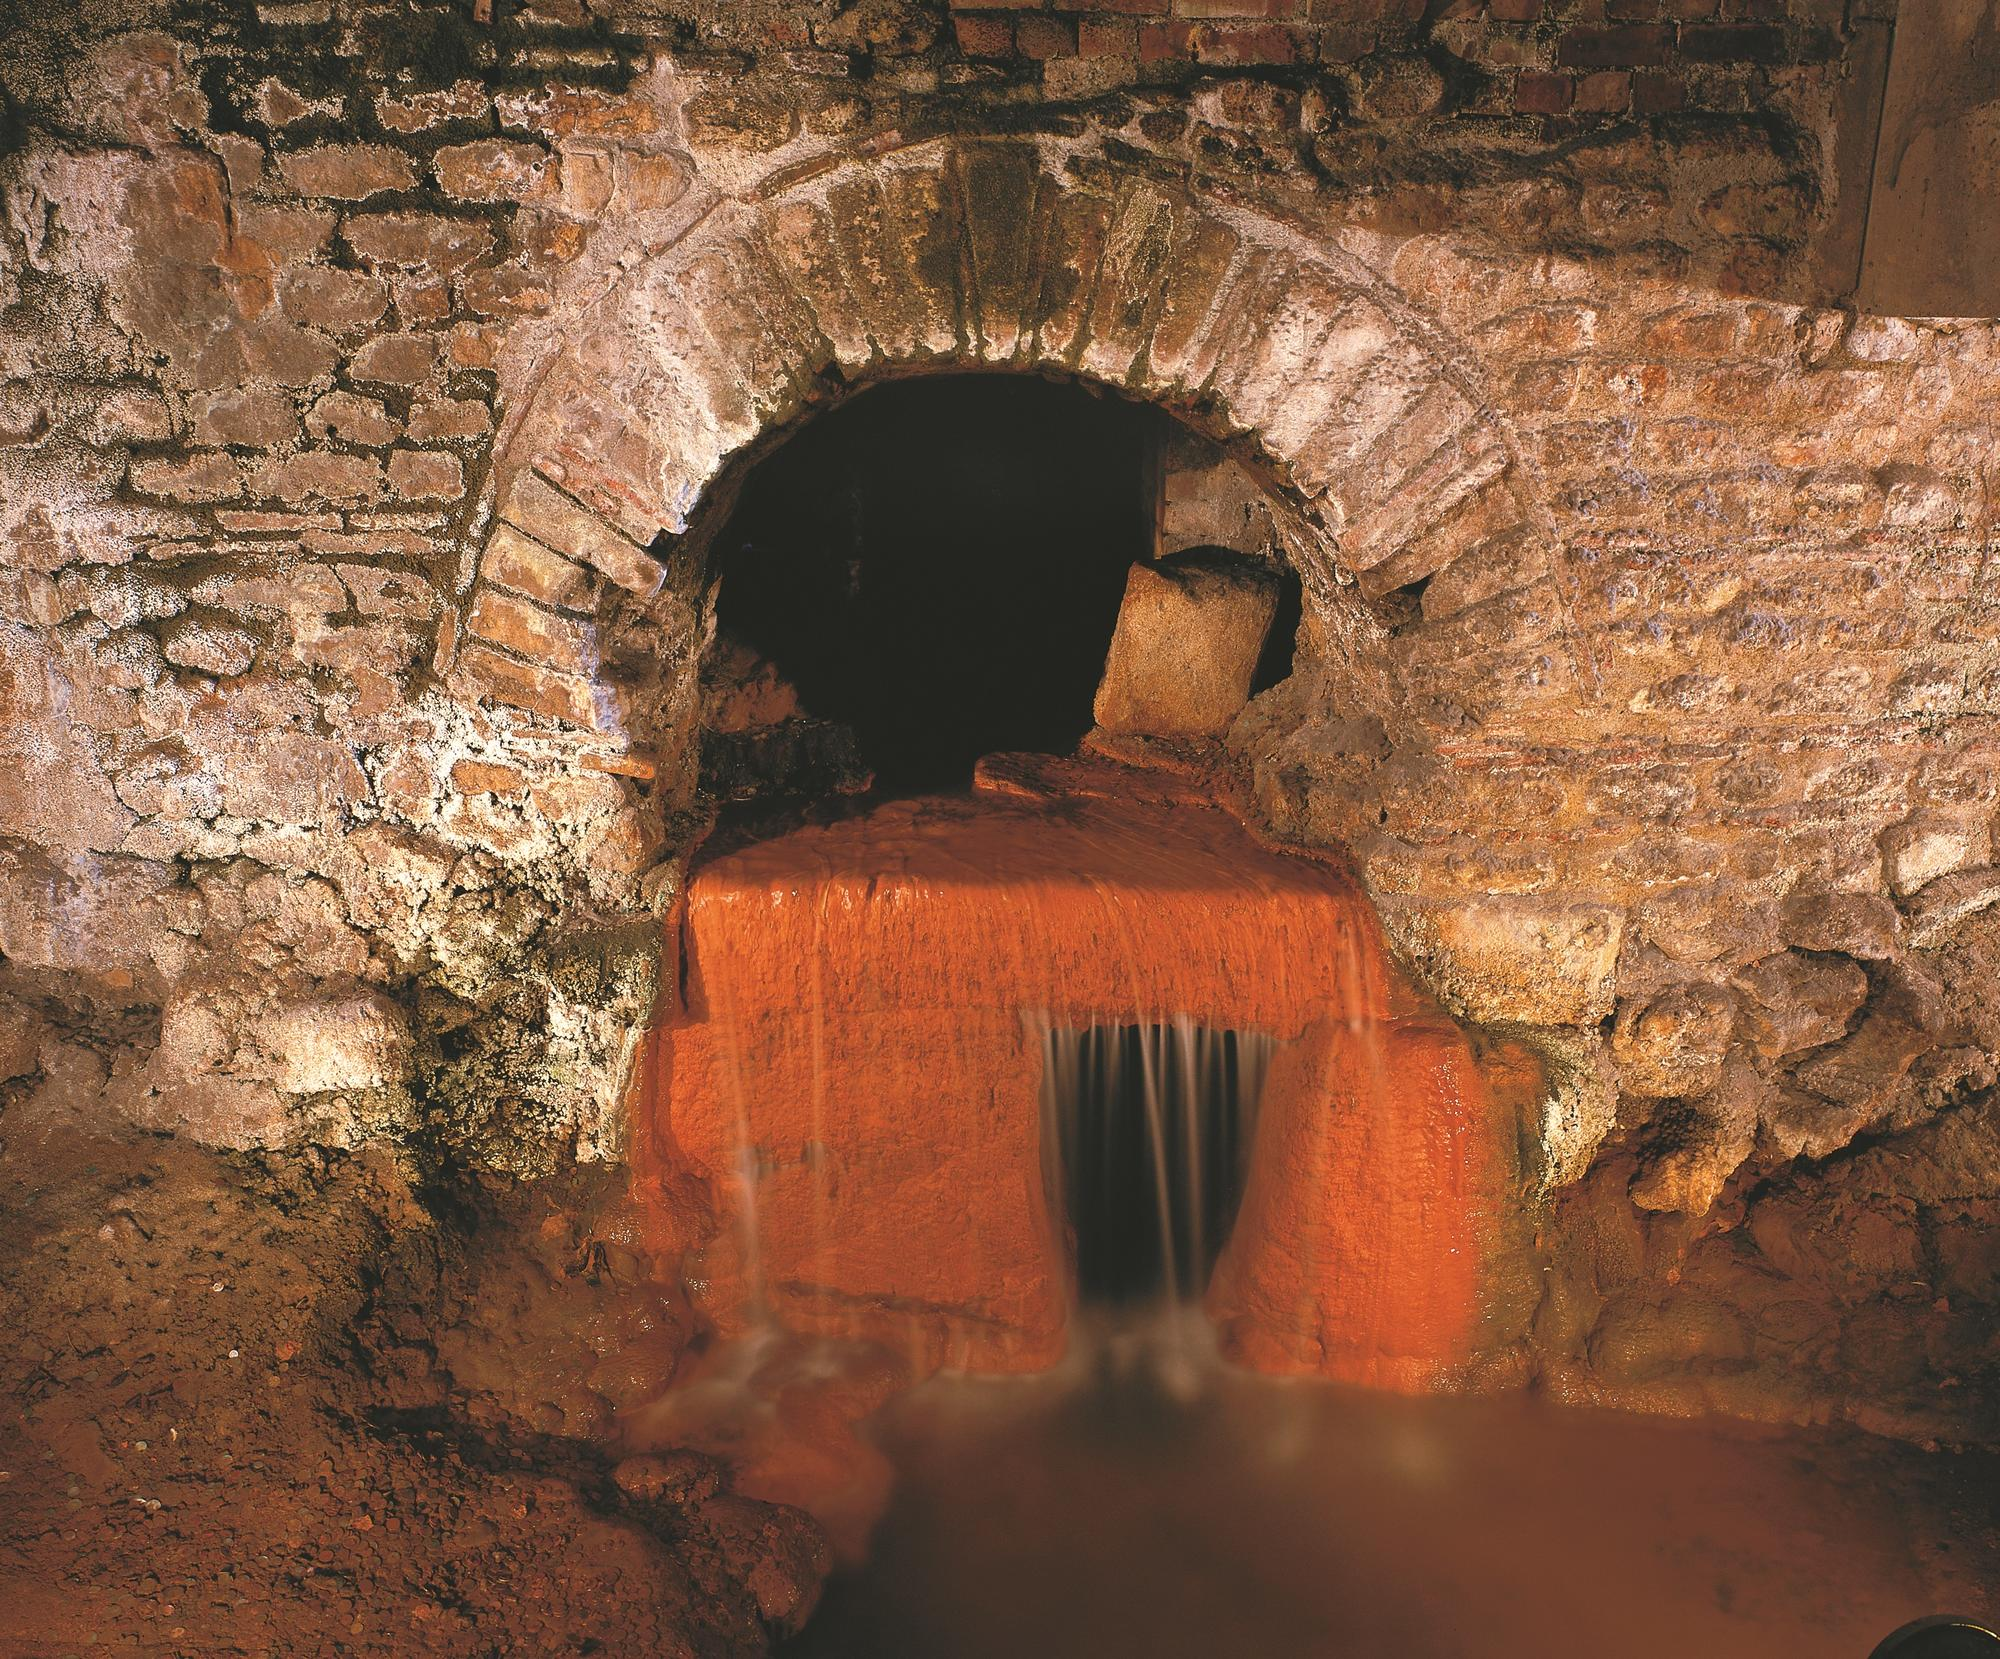 Image: Overflow at the Roman Baths Museum